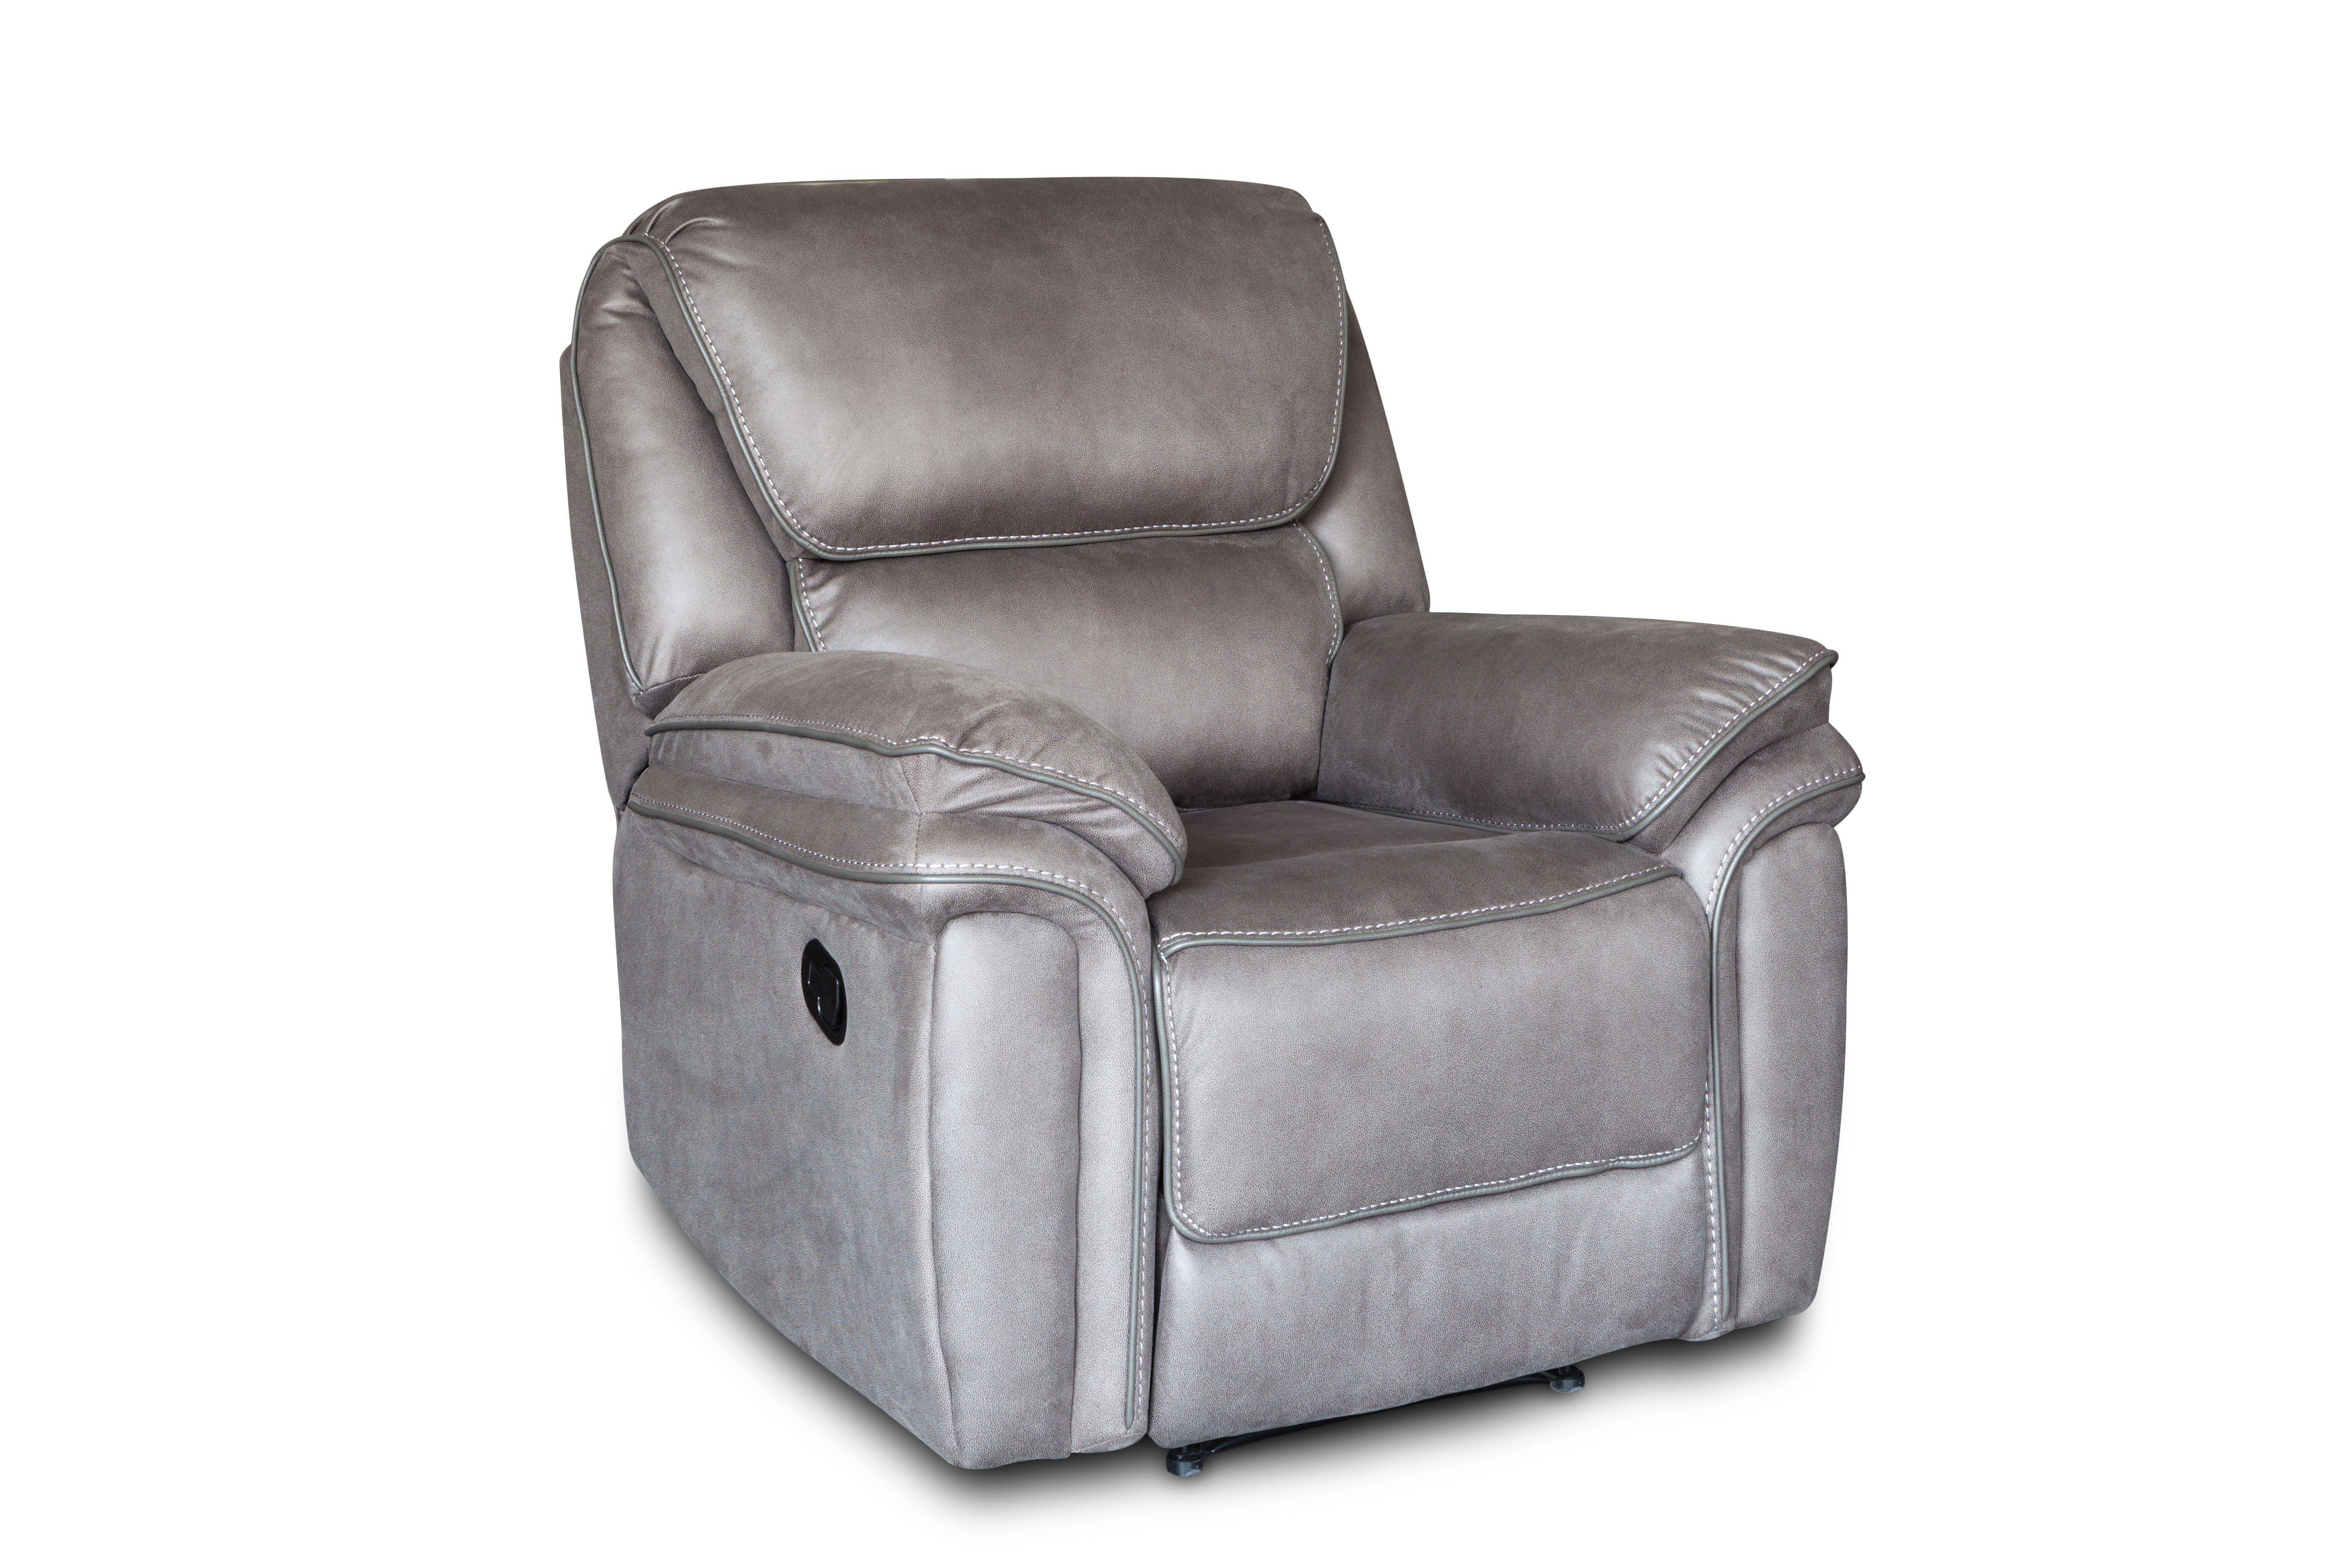 American style furniture recliner sofa genuine leather